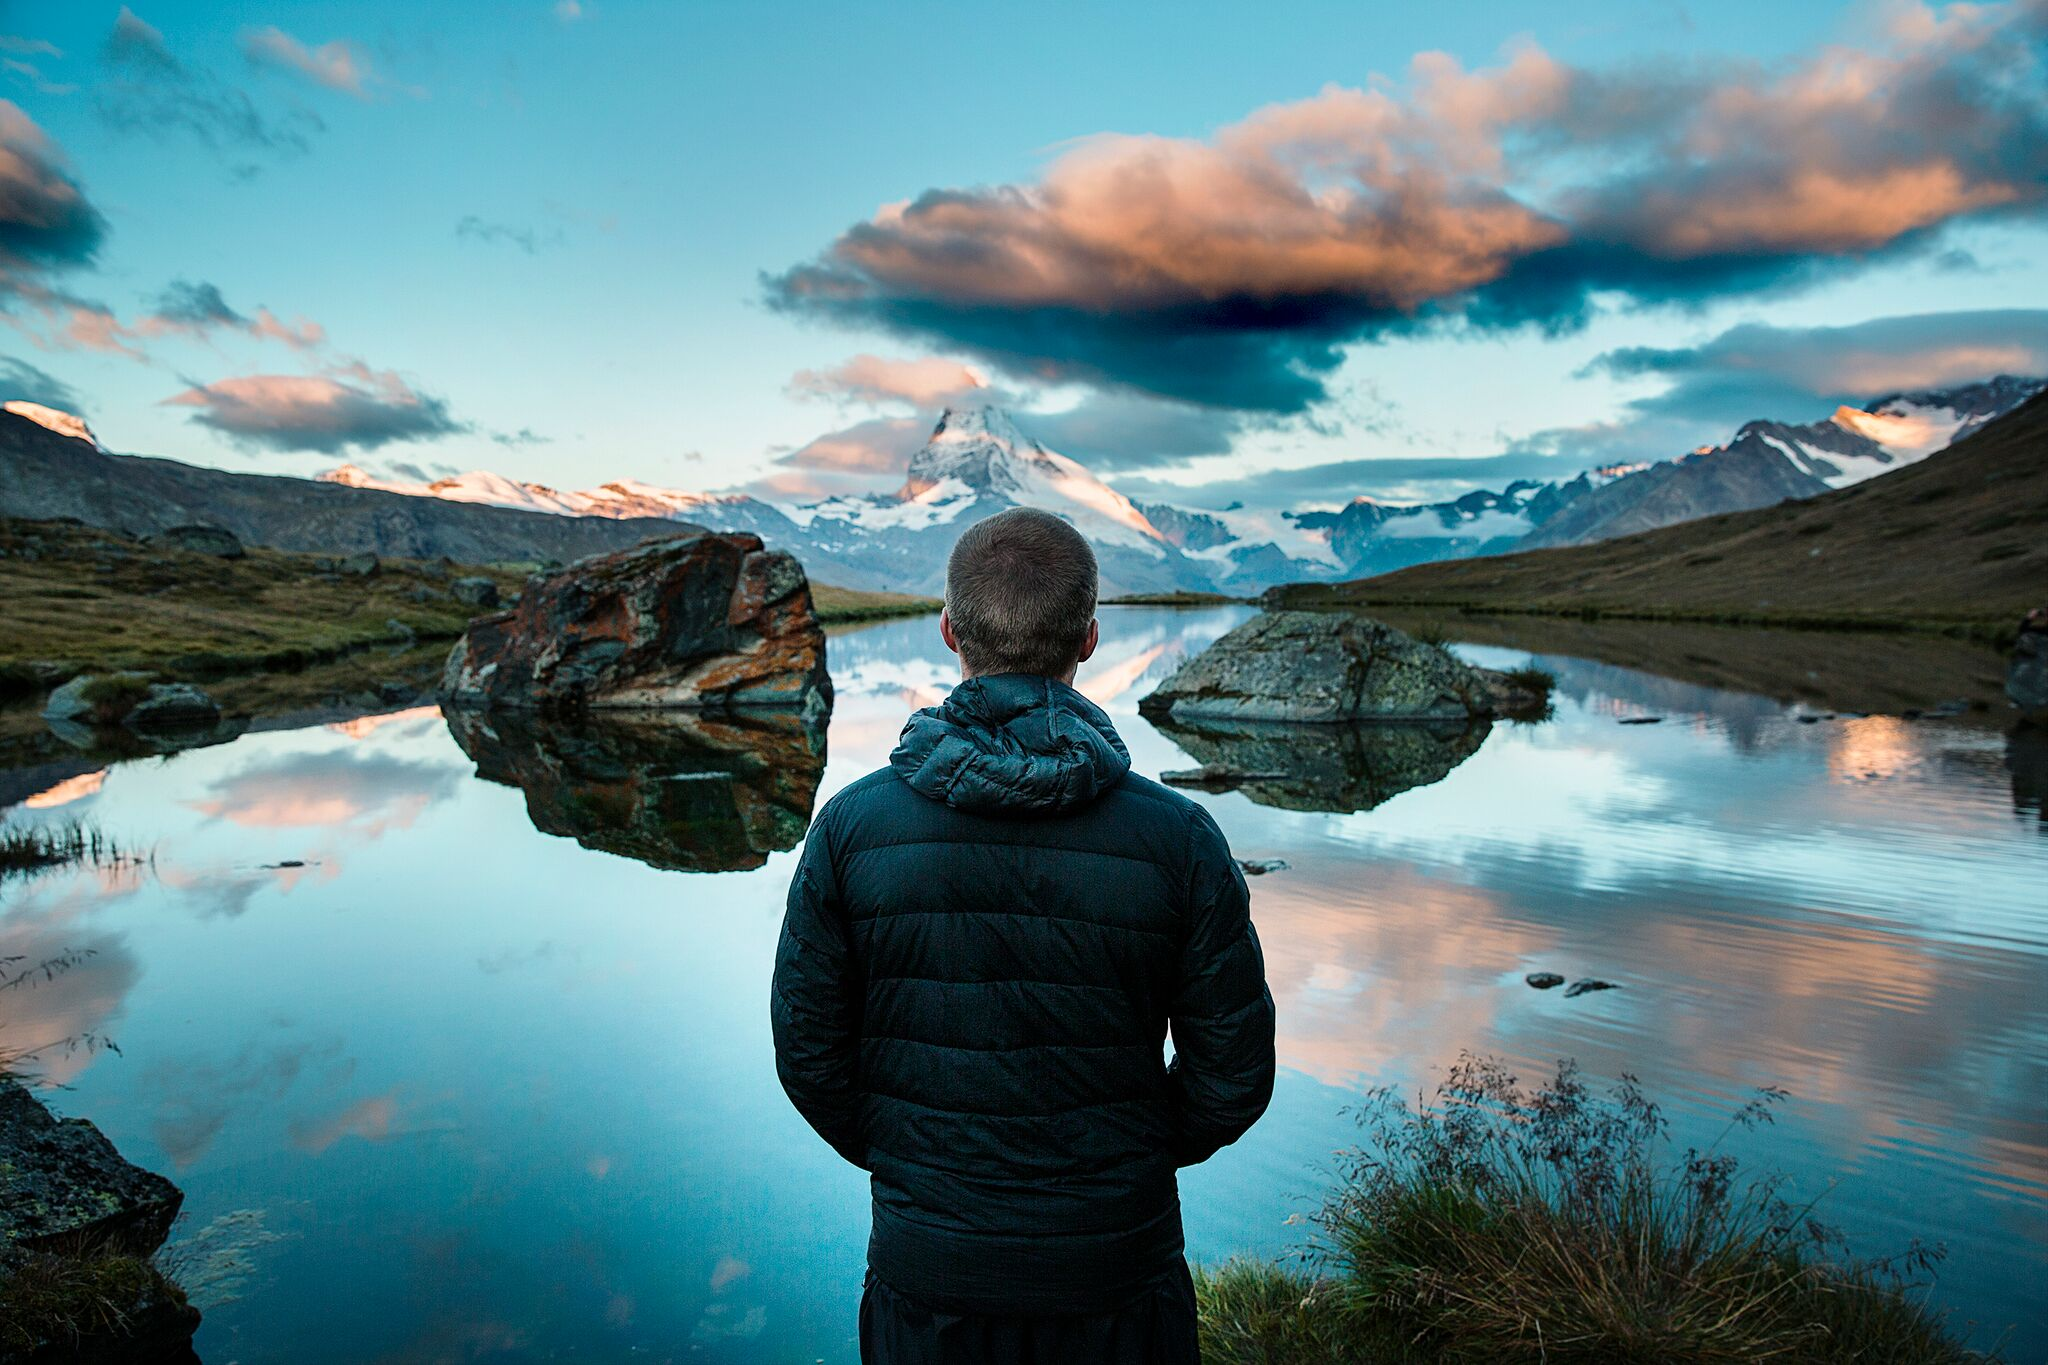 man looking out on lake and snowcapped mountain